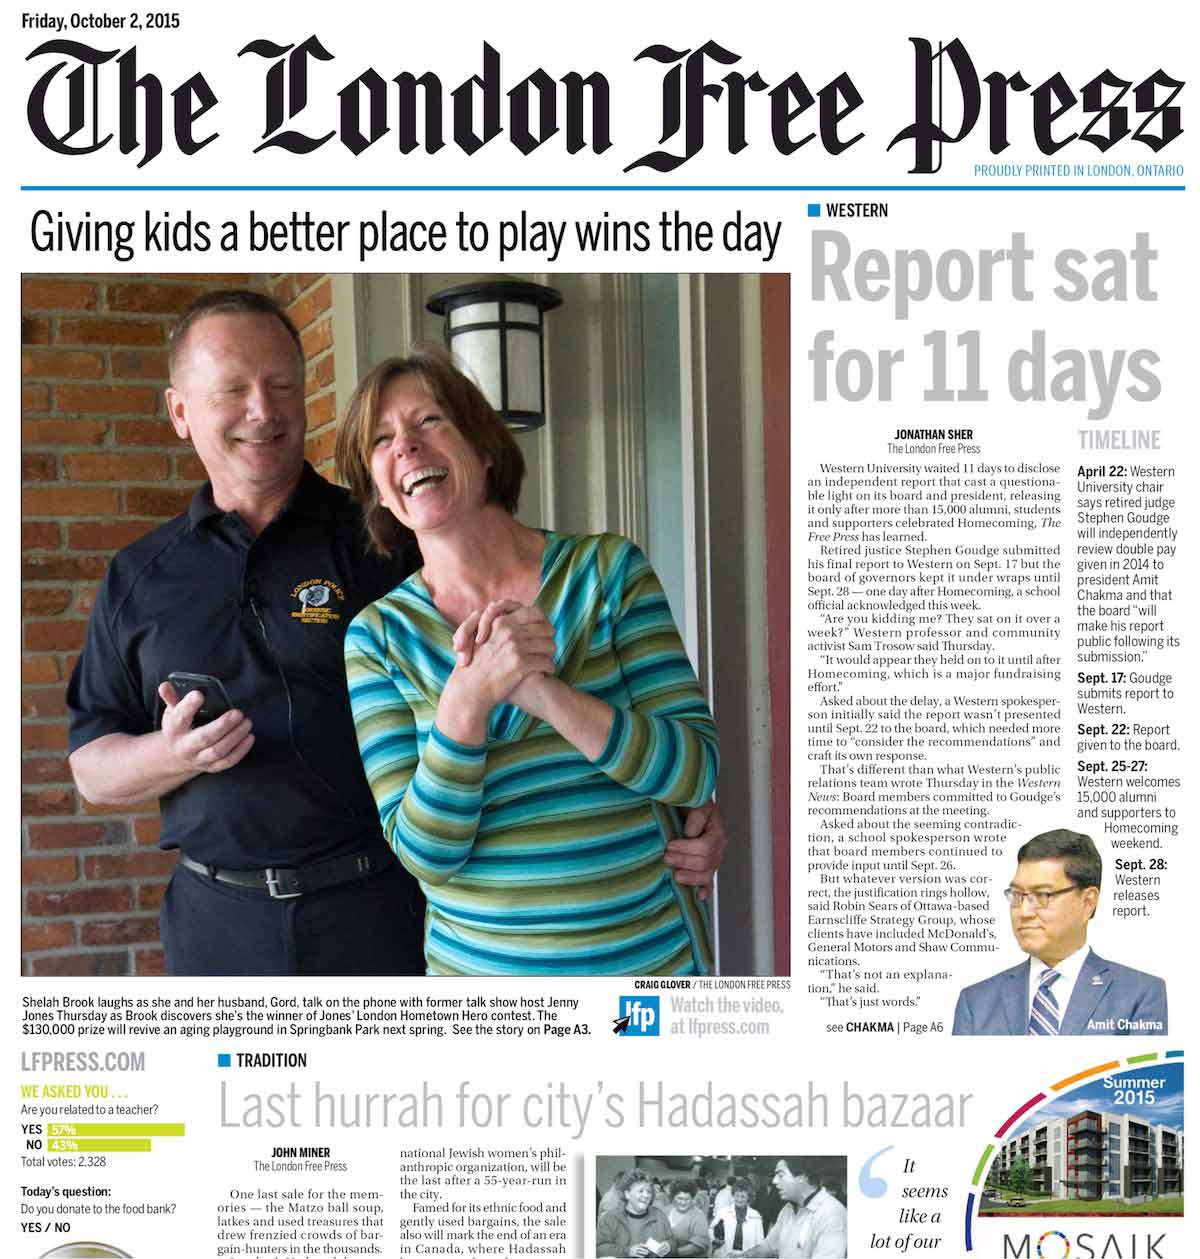 London Free Press e-edition - The London Free Press - 2 Oct 2015 - Page #1